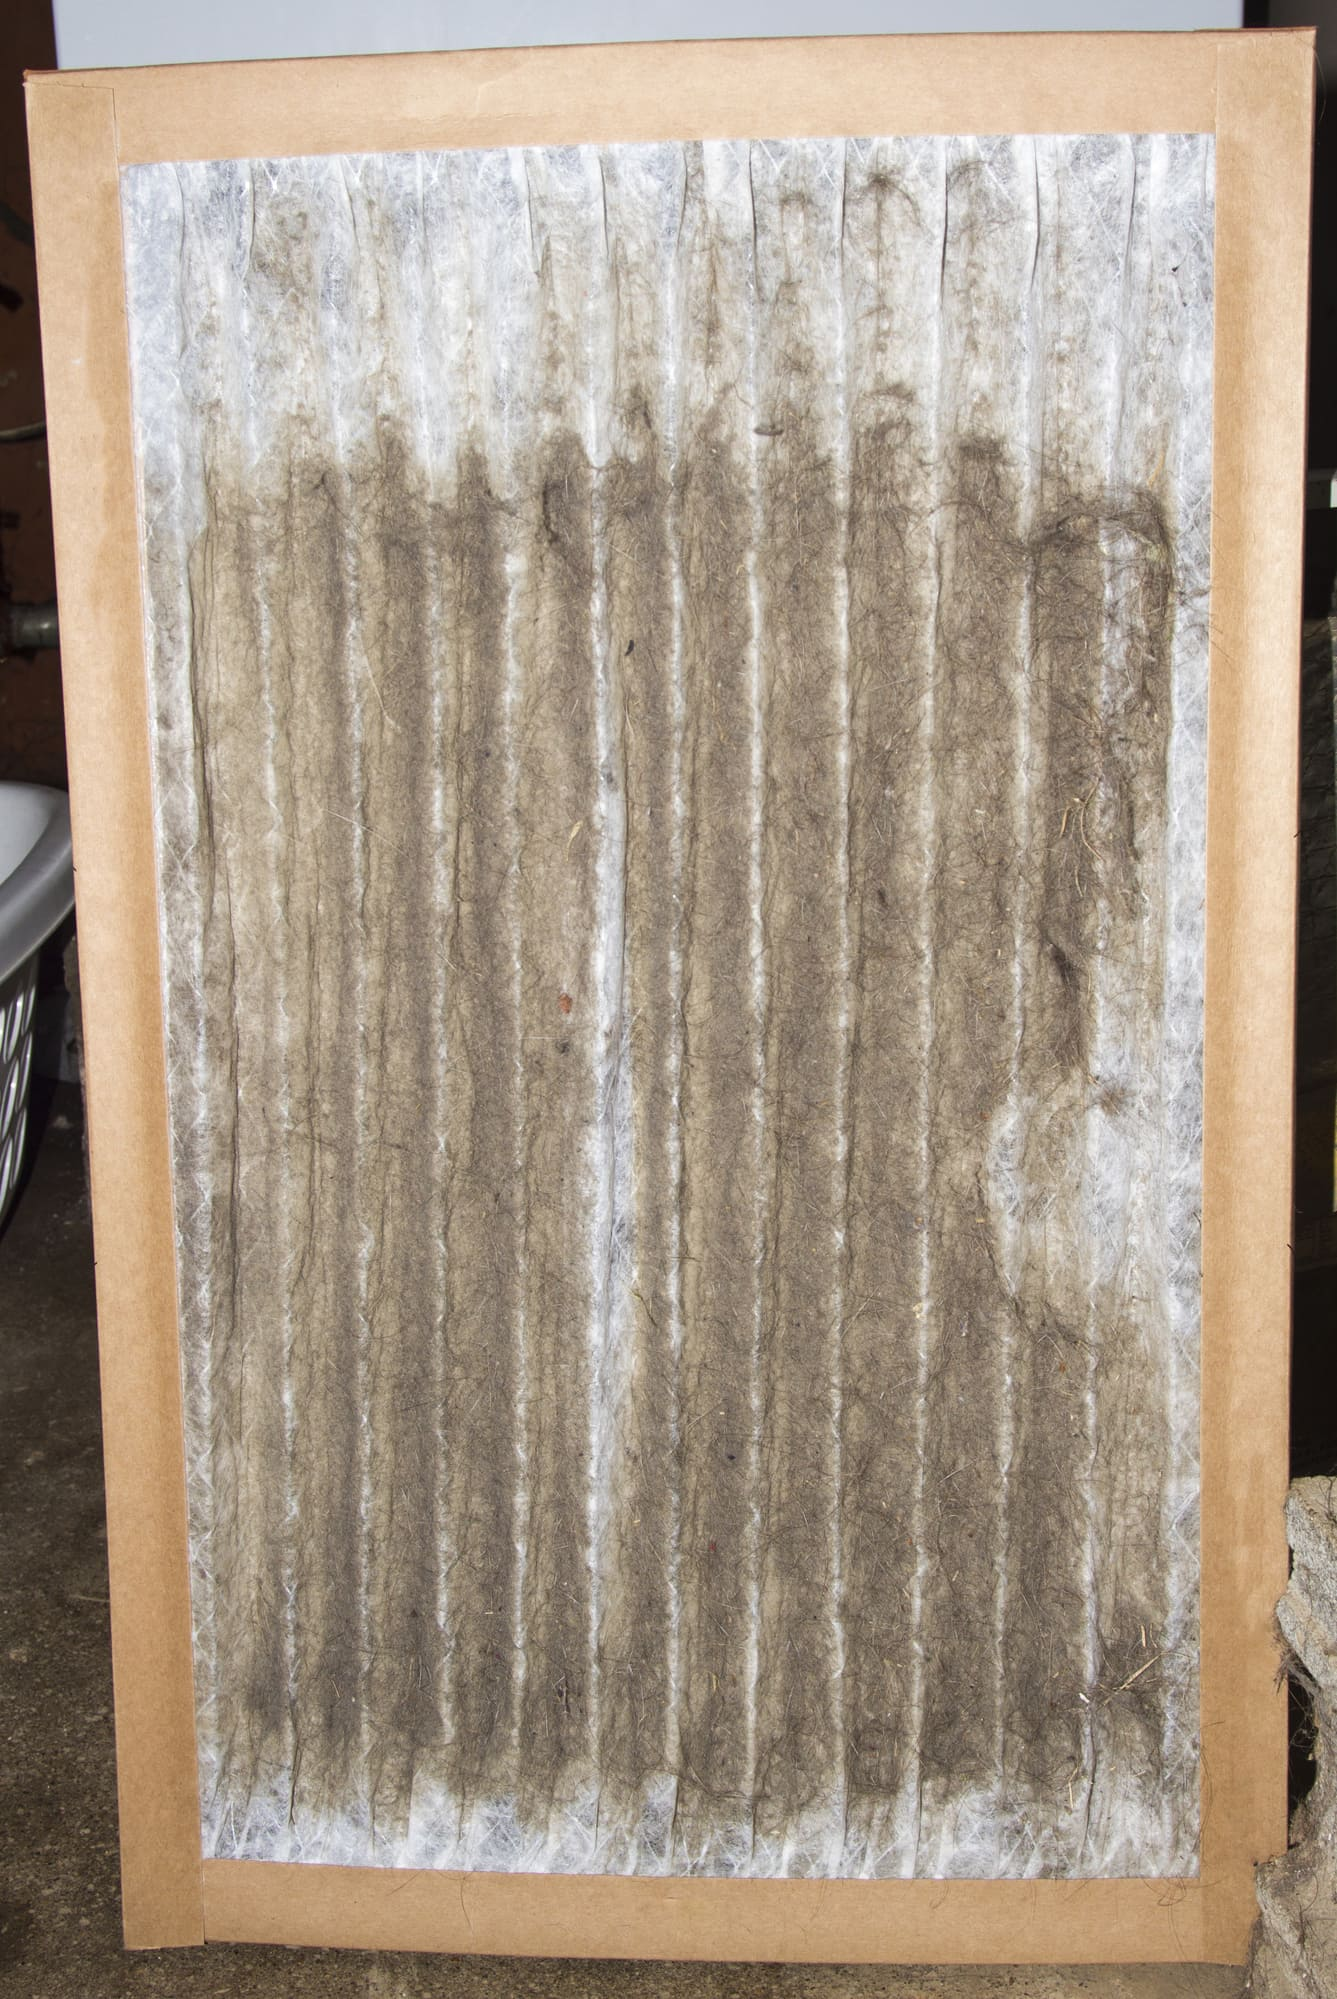 Front View of A Dirty Furnace Filter Taken Out Of A Customer's Furnace